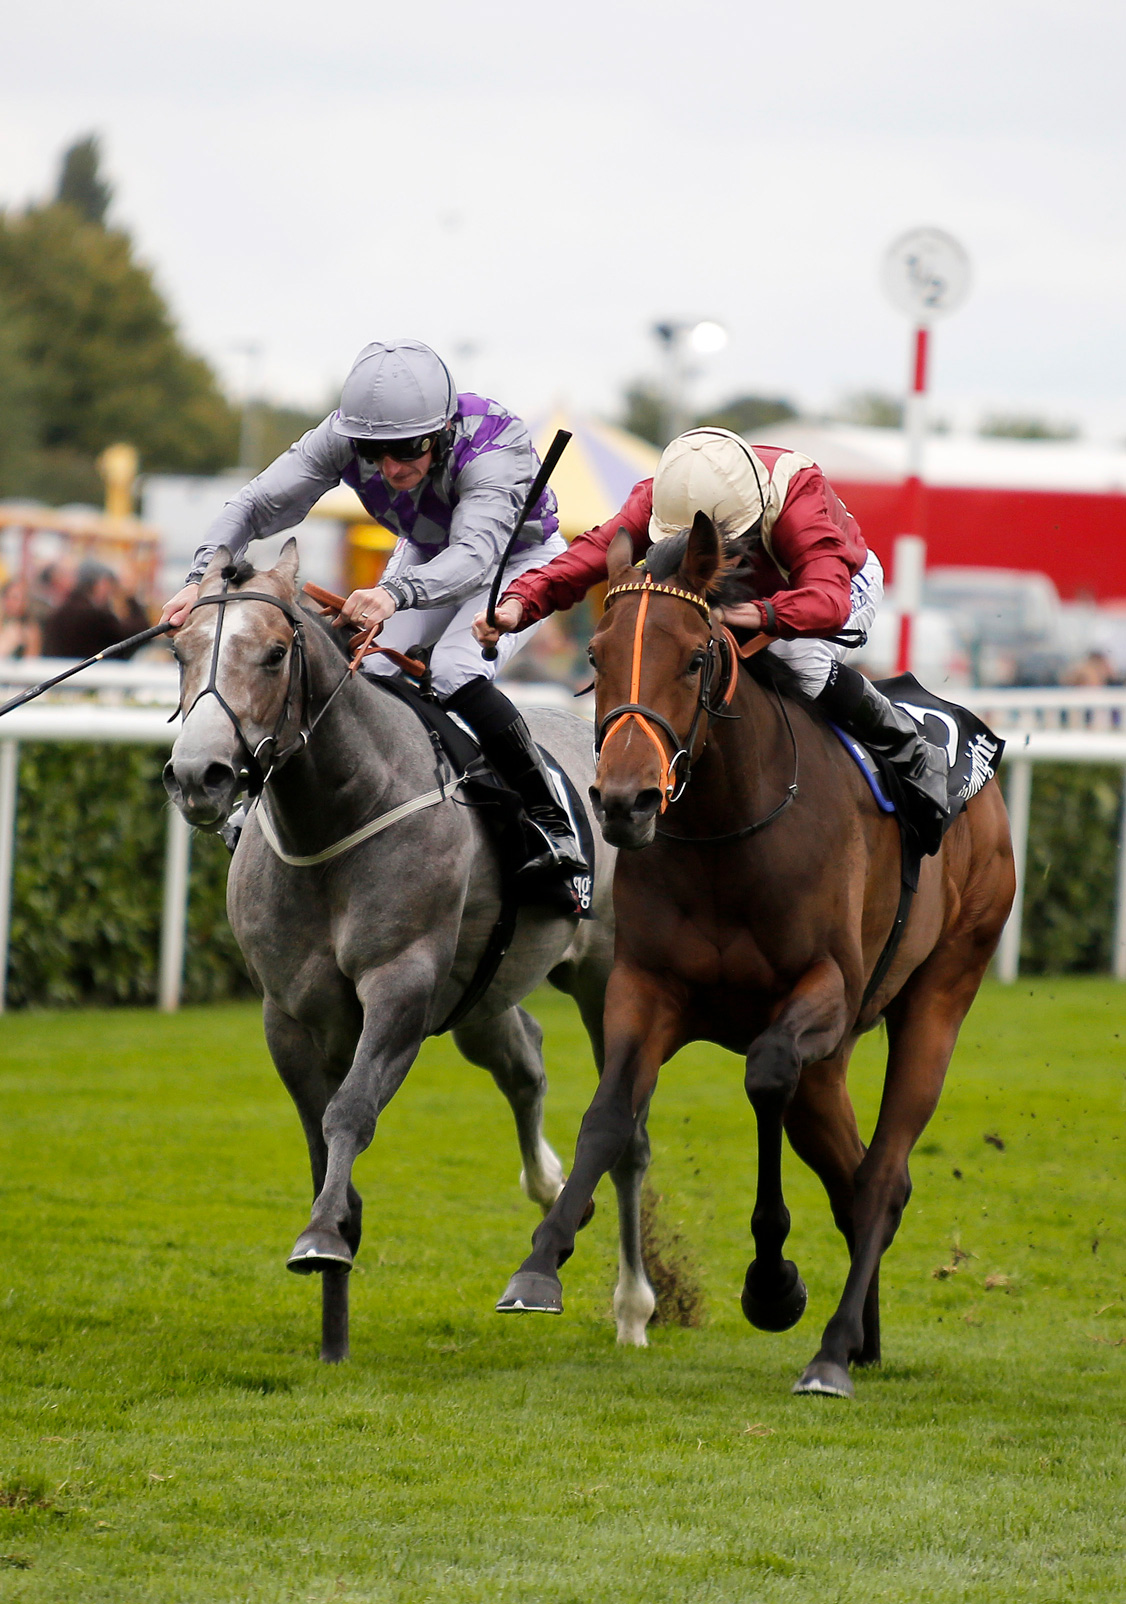 Heartaches denies Havana Grey to win the G2 Flying Childers Stakes at Doncaster